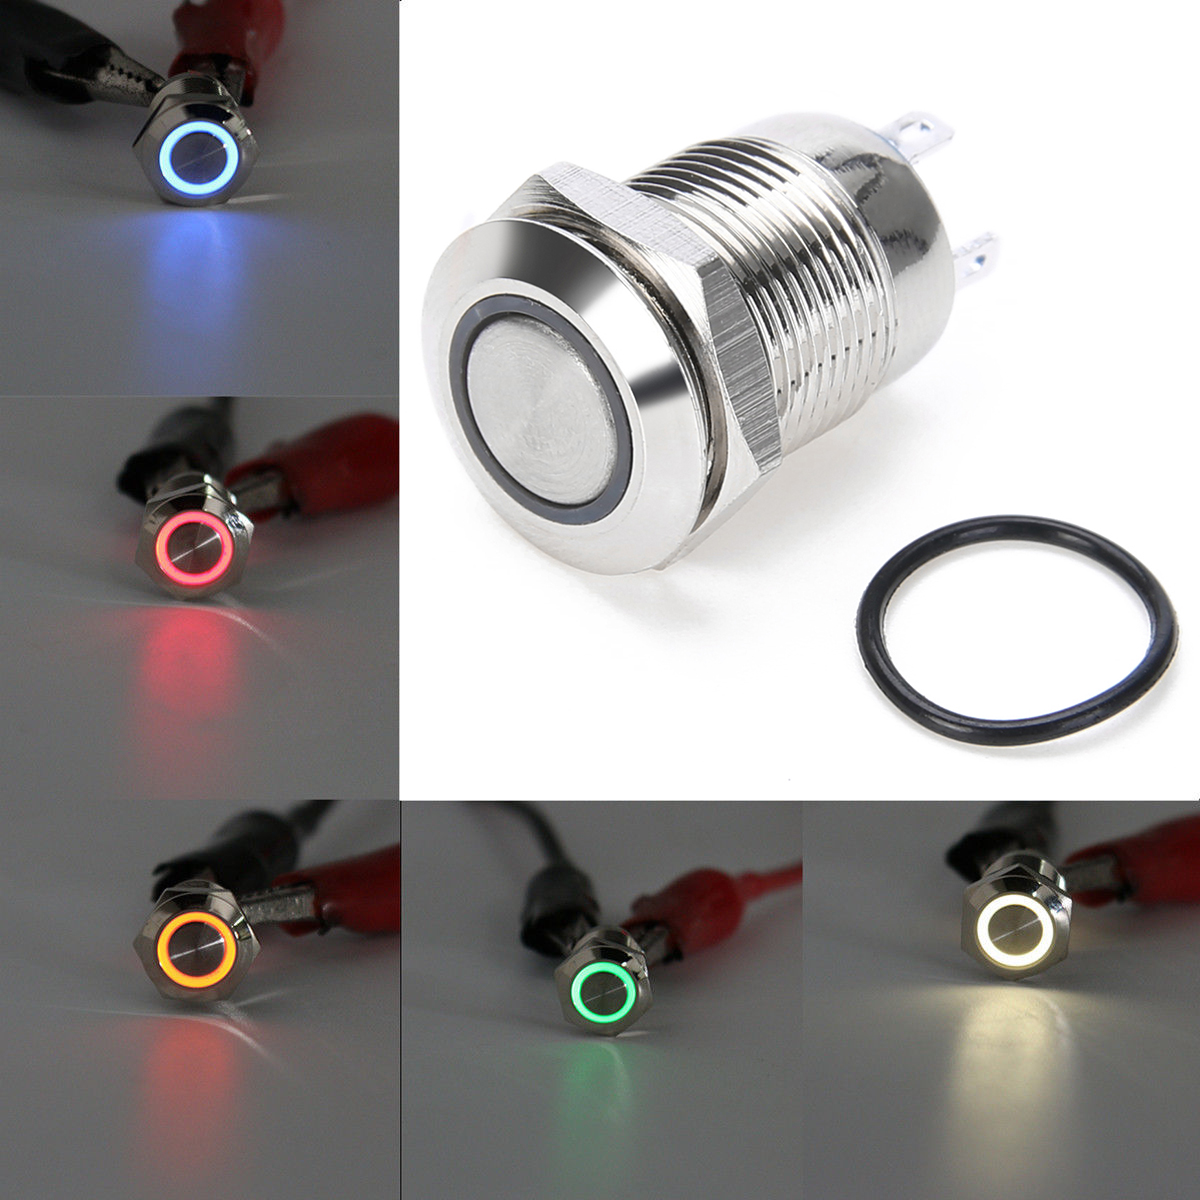 Waterproof Silver 4 Pin Metal Push Button Switch 2A 36V Mayitr White Led Light Momentary Switches 12mm Hole for Outdoors Use